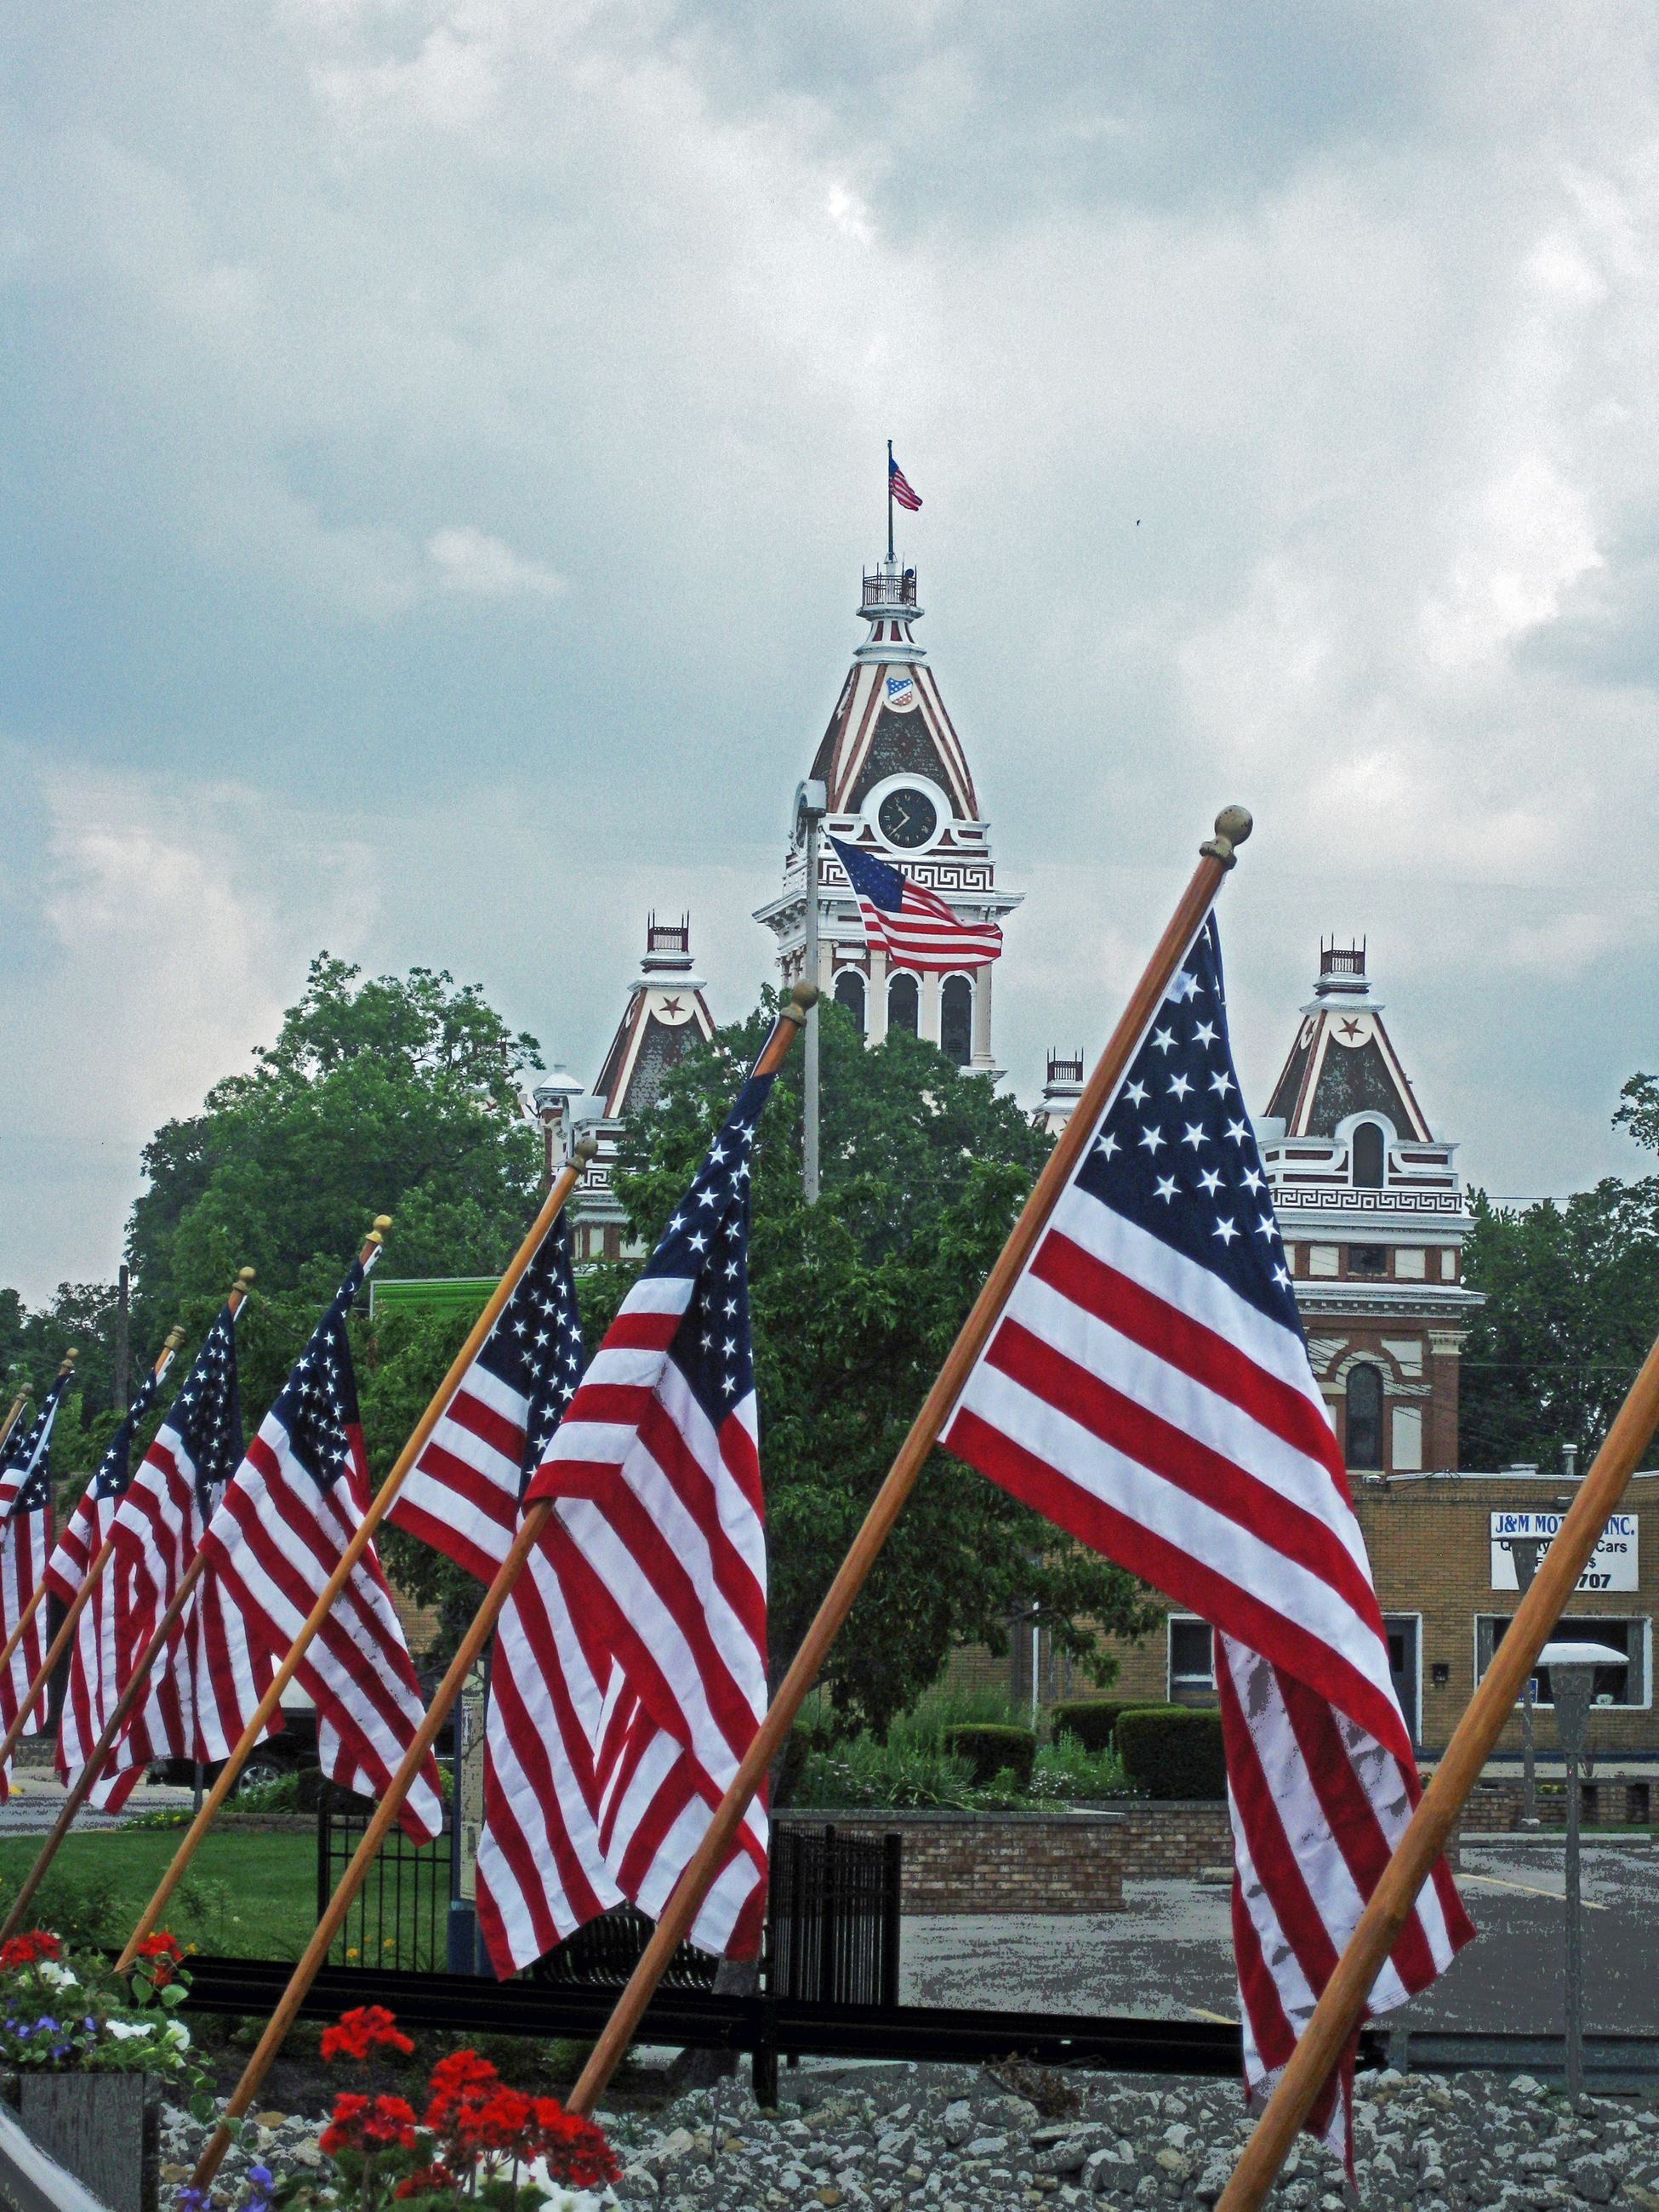 Courthouse in distance, American Flags in foreground